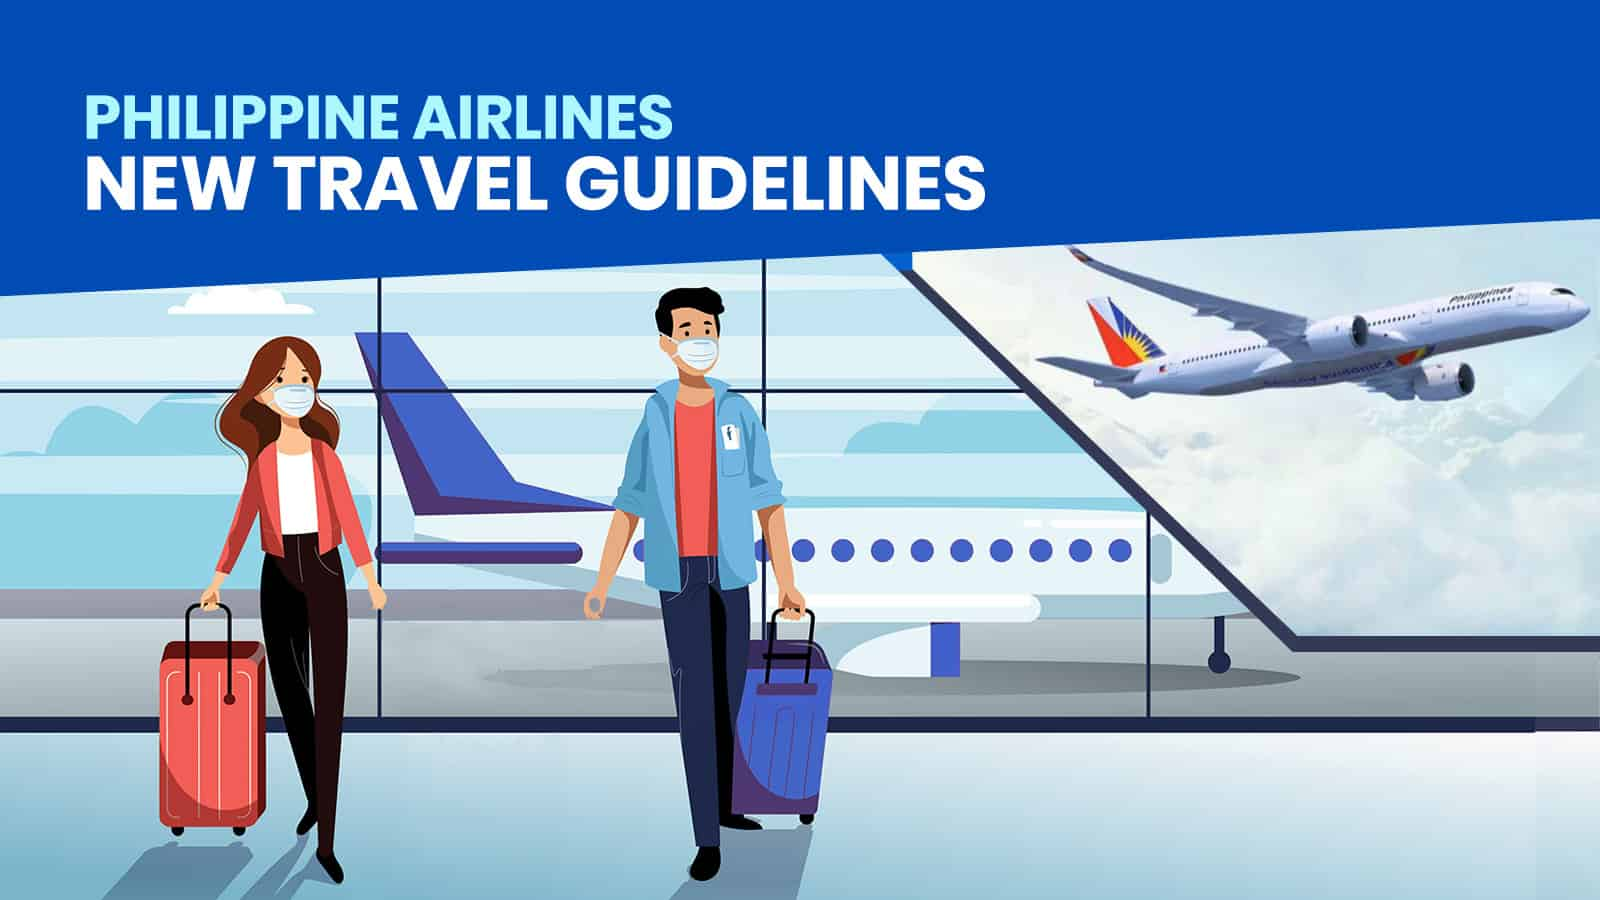 Philippine Airlines New Travel Guidelines Before During After Flight The Poor Traveler Itinerary Blog